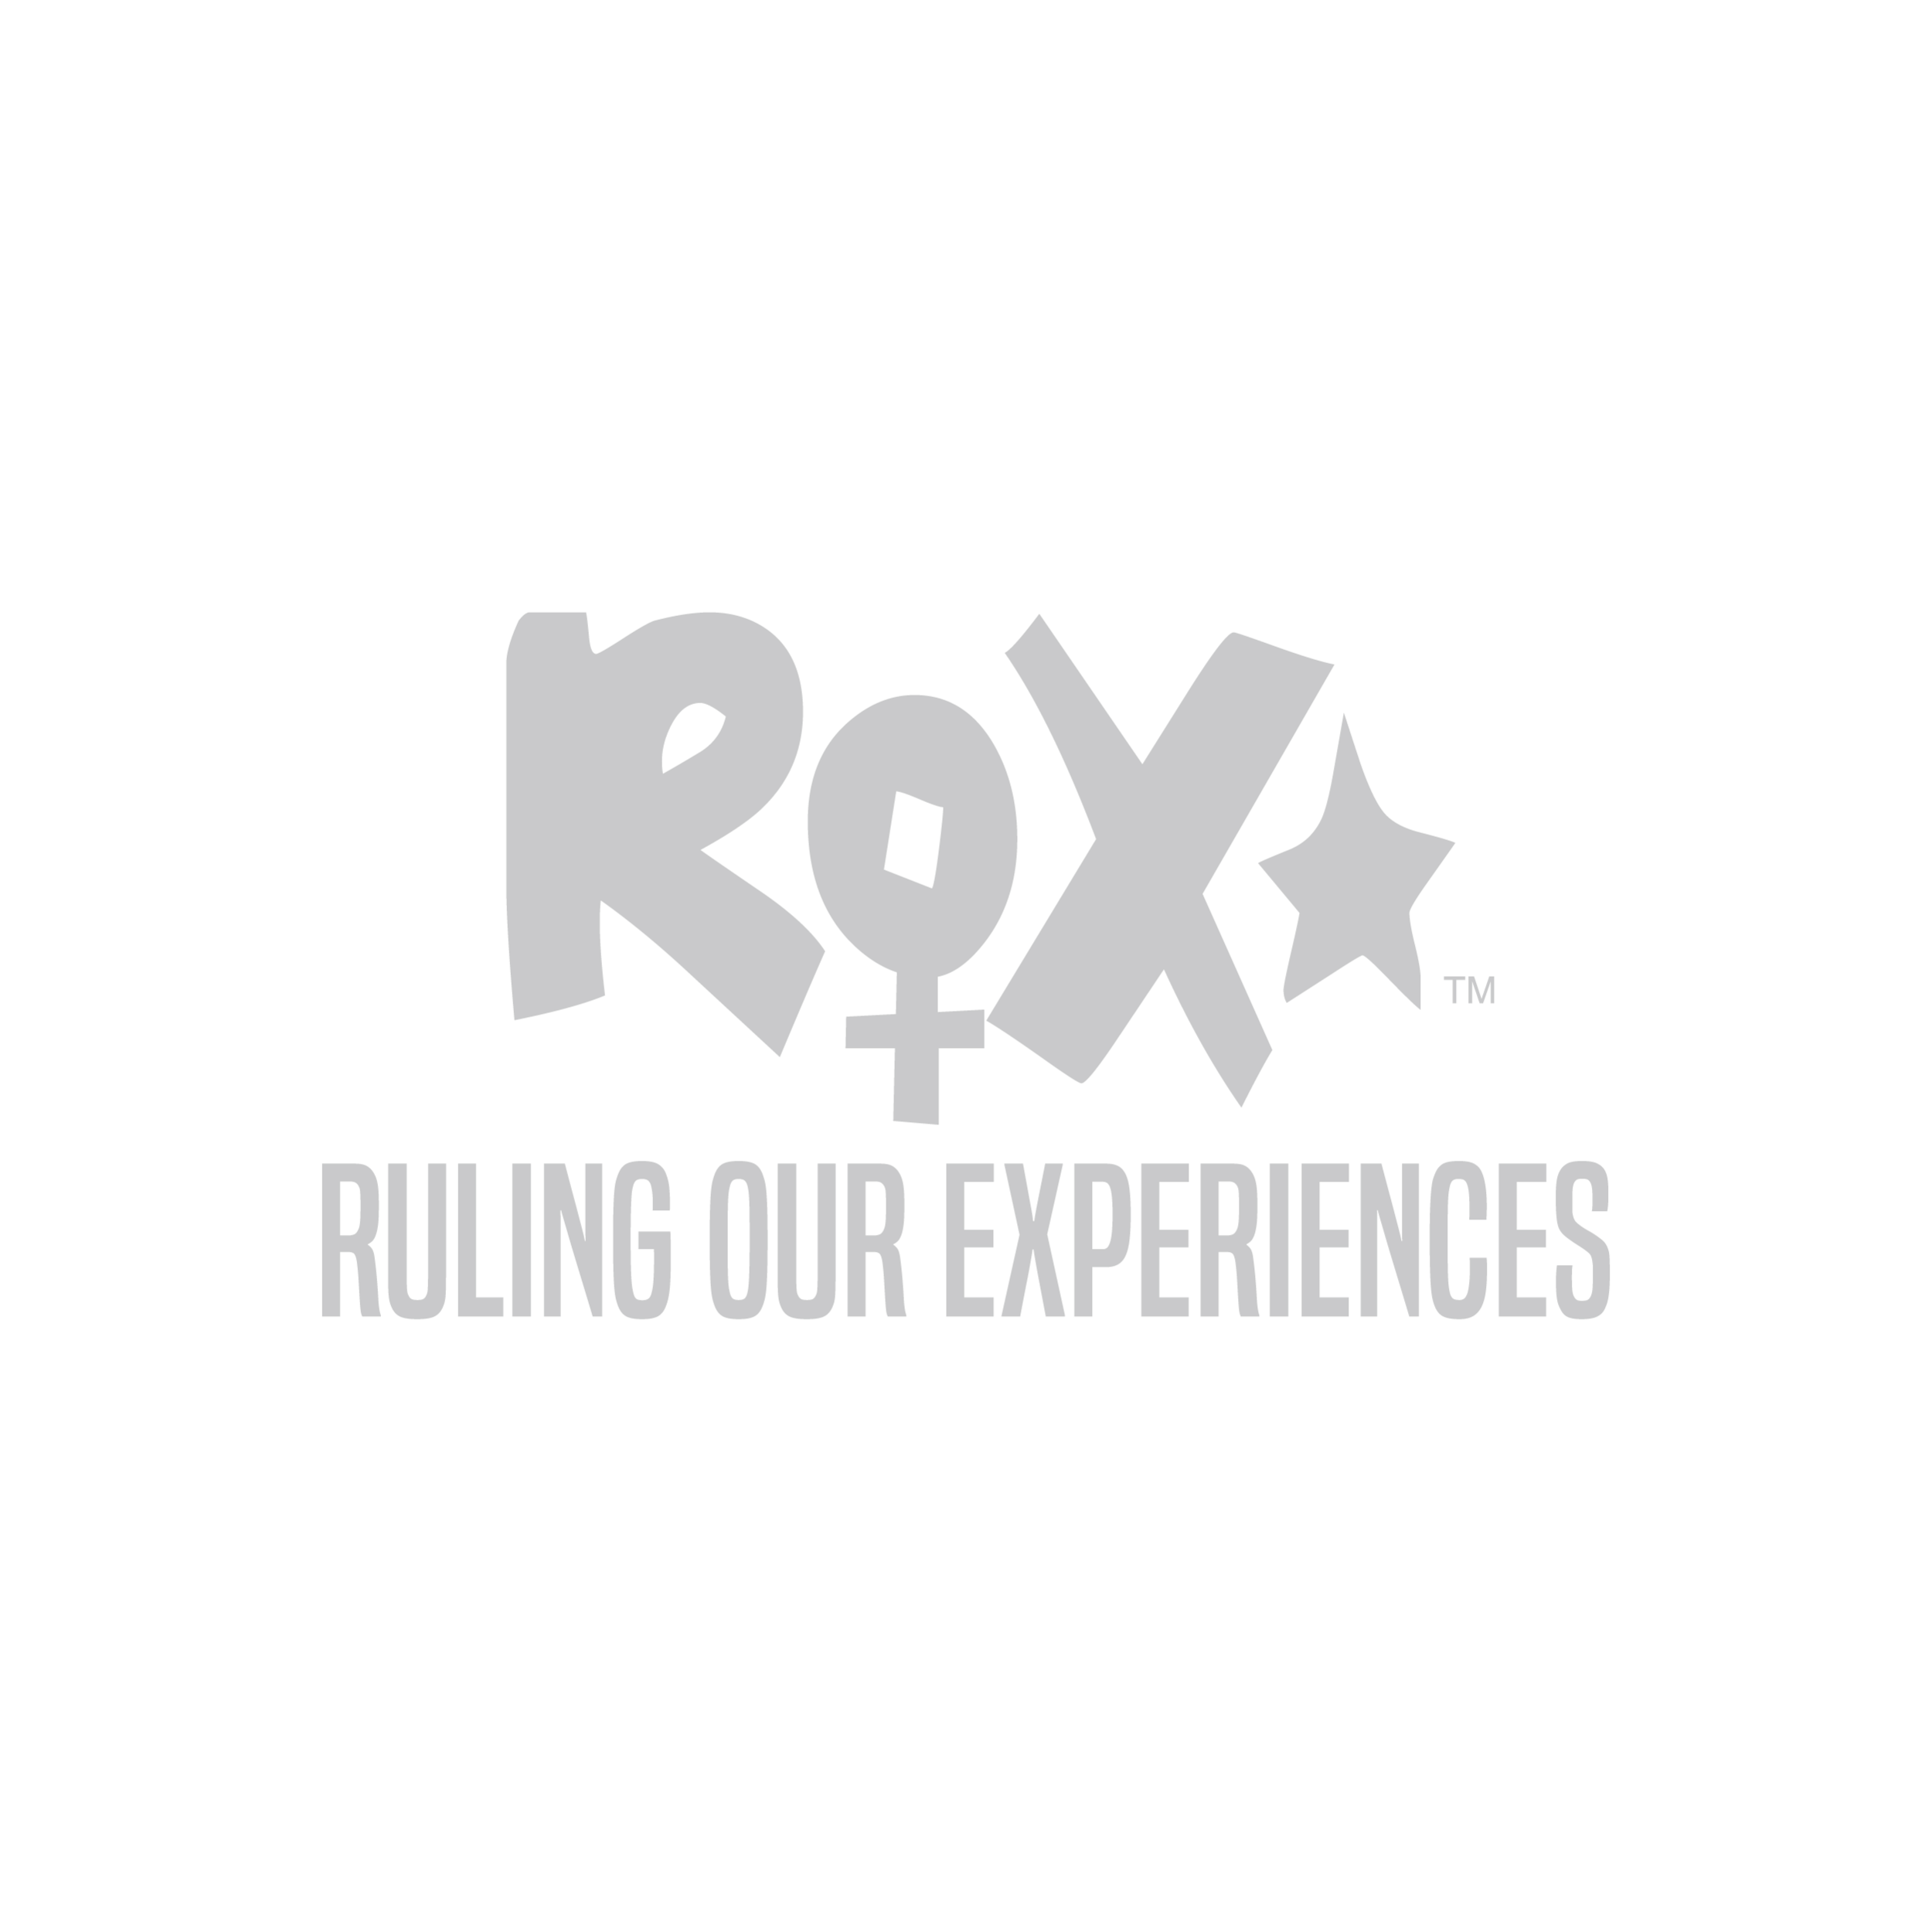 ROCK-0019 RTRX Pitch Competition Logos_ROX_v1a.png